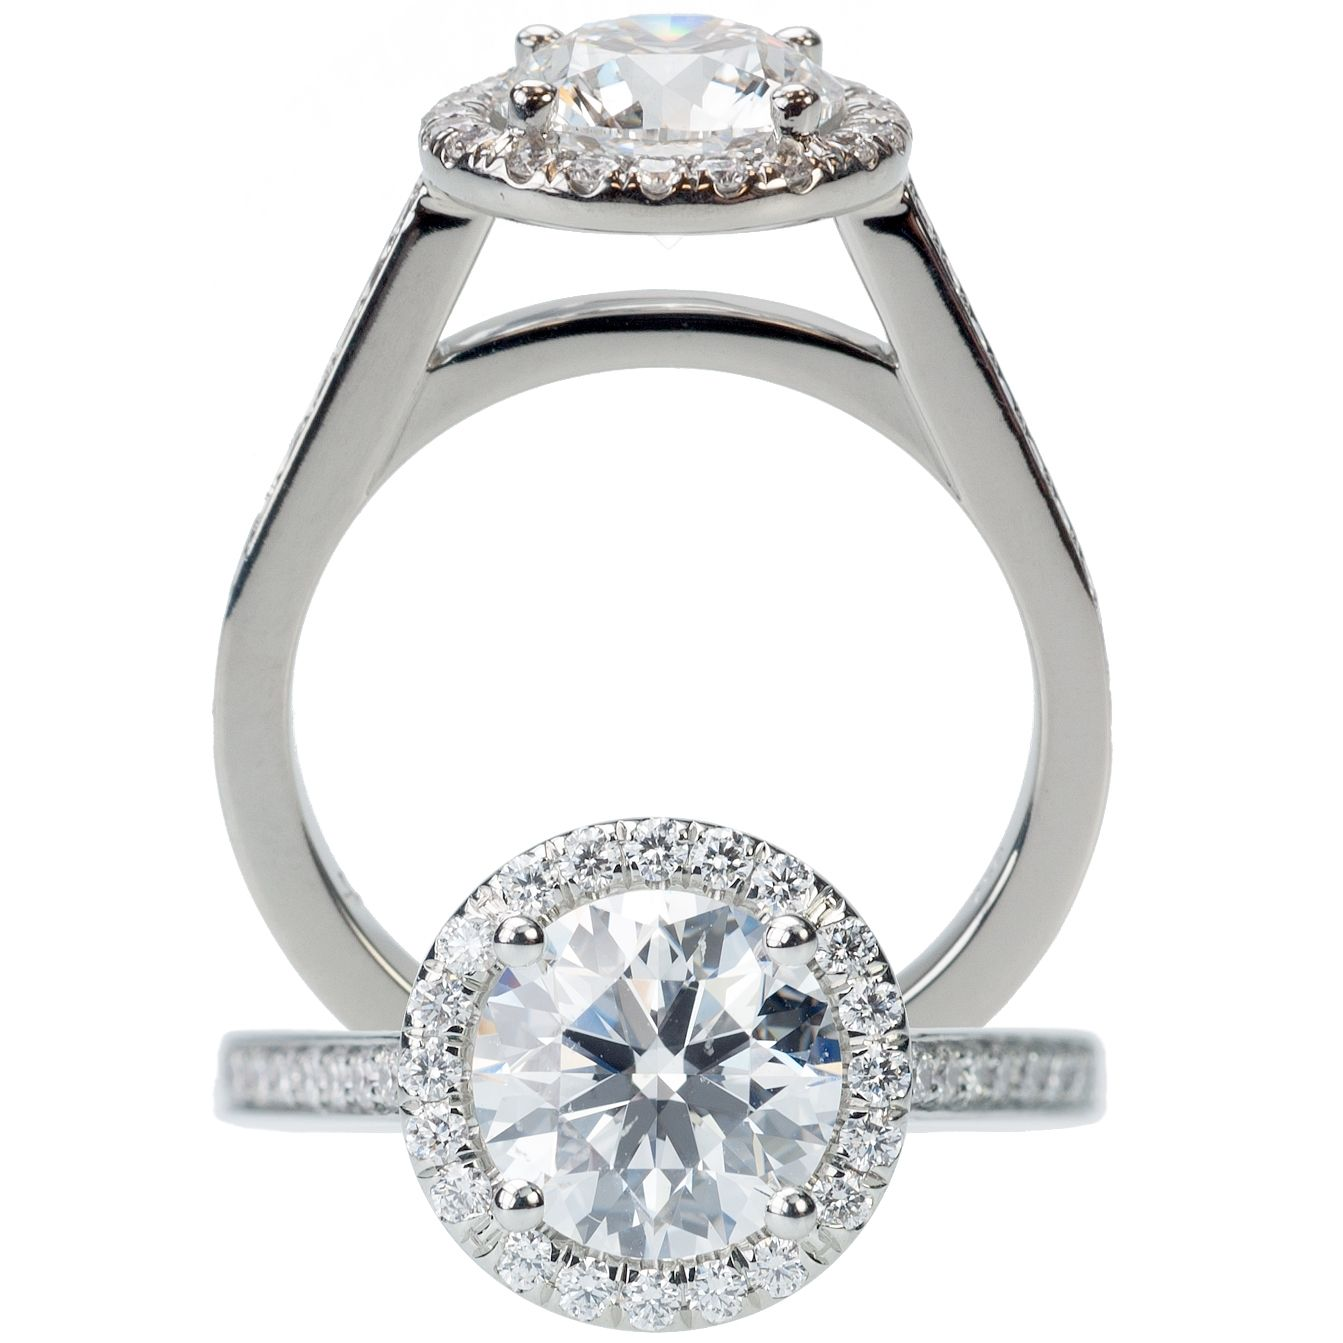 should collection collections new mark atrium bridal patterson rings see copy jewelry engagement every ring bride